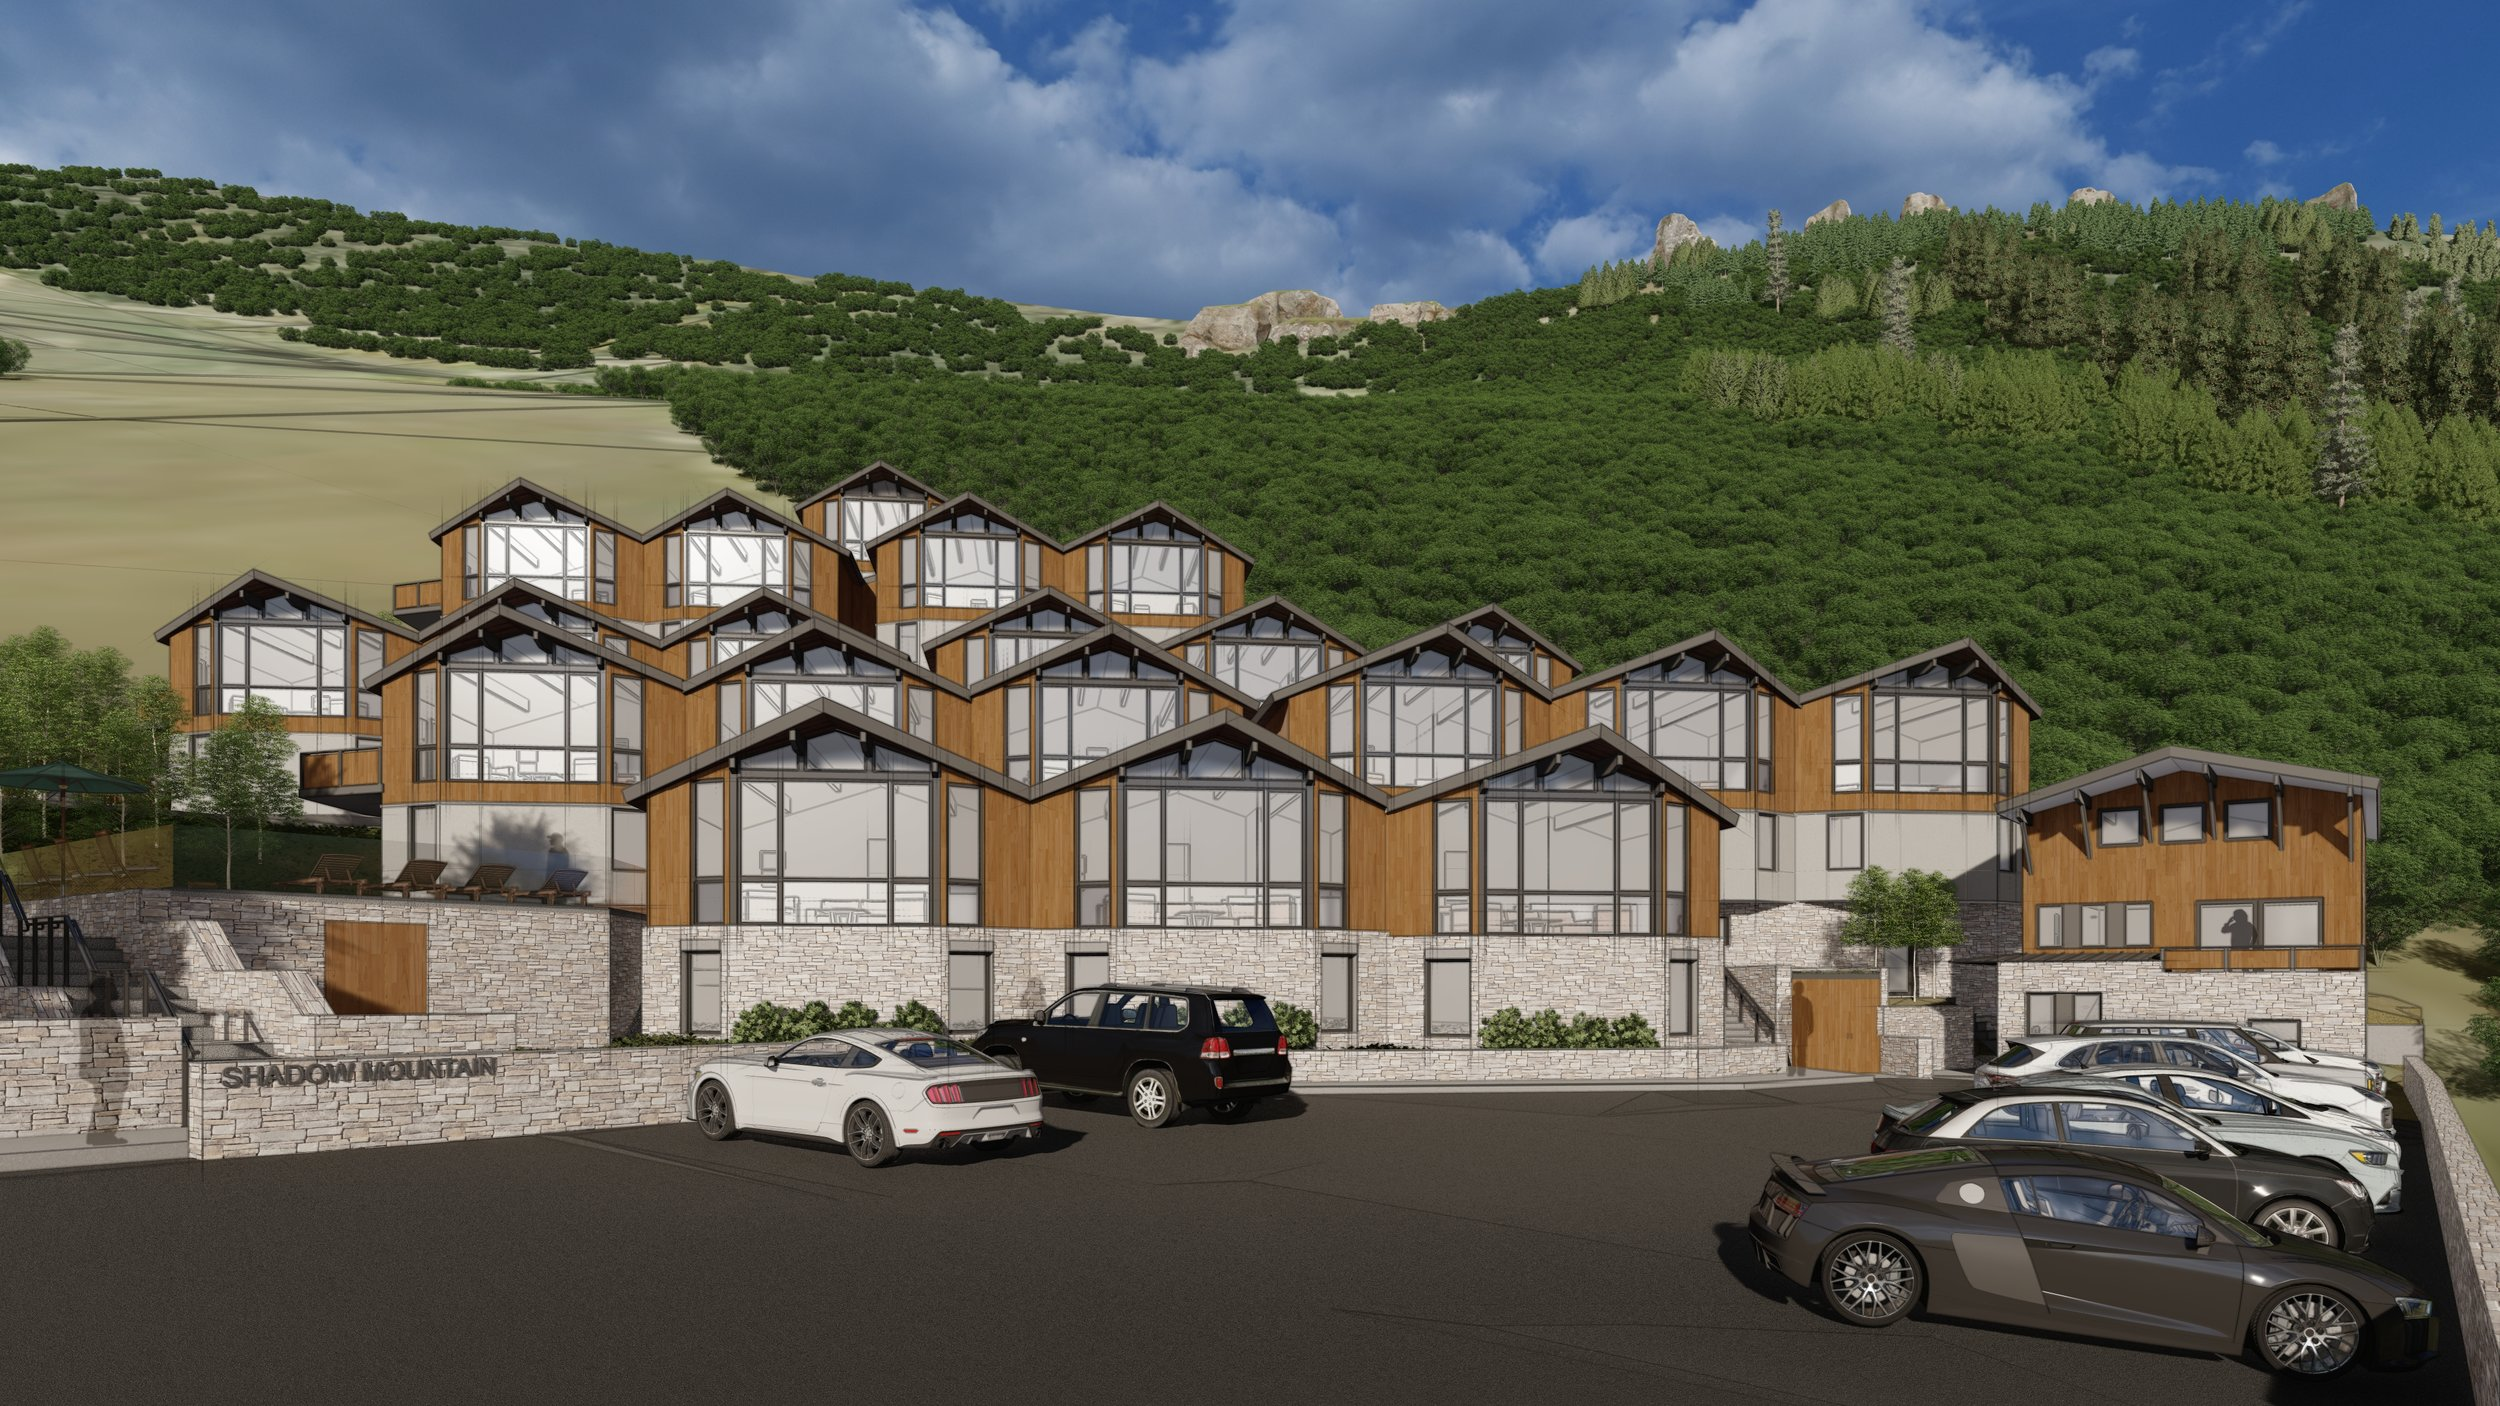 Shadow Mountain Townhomes